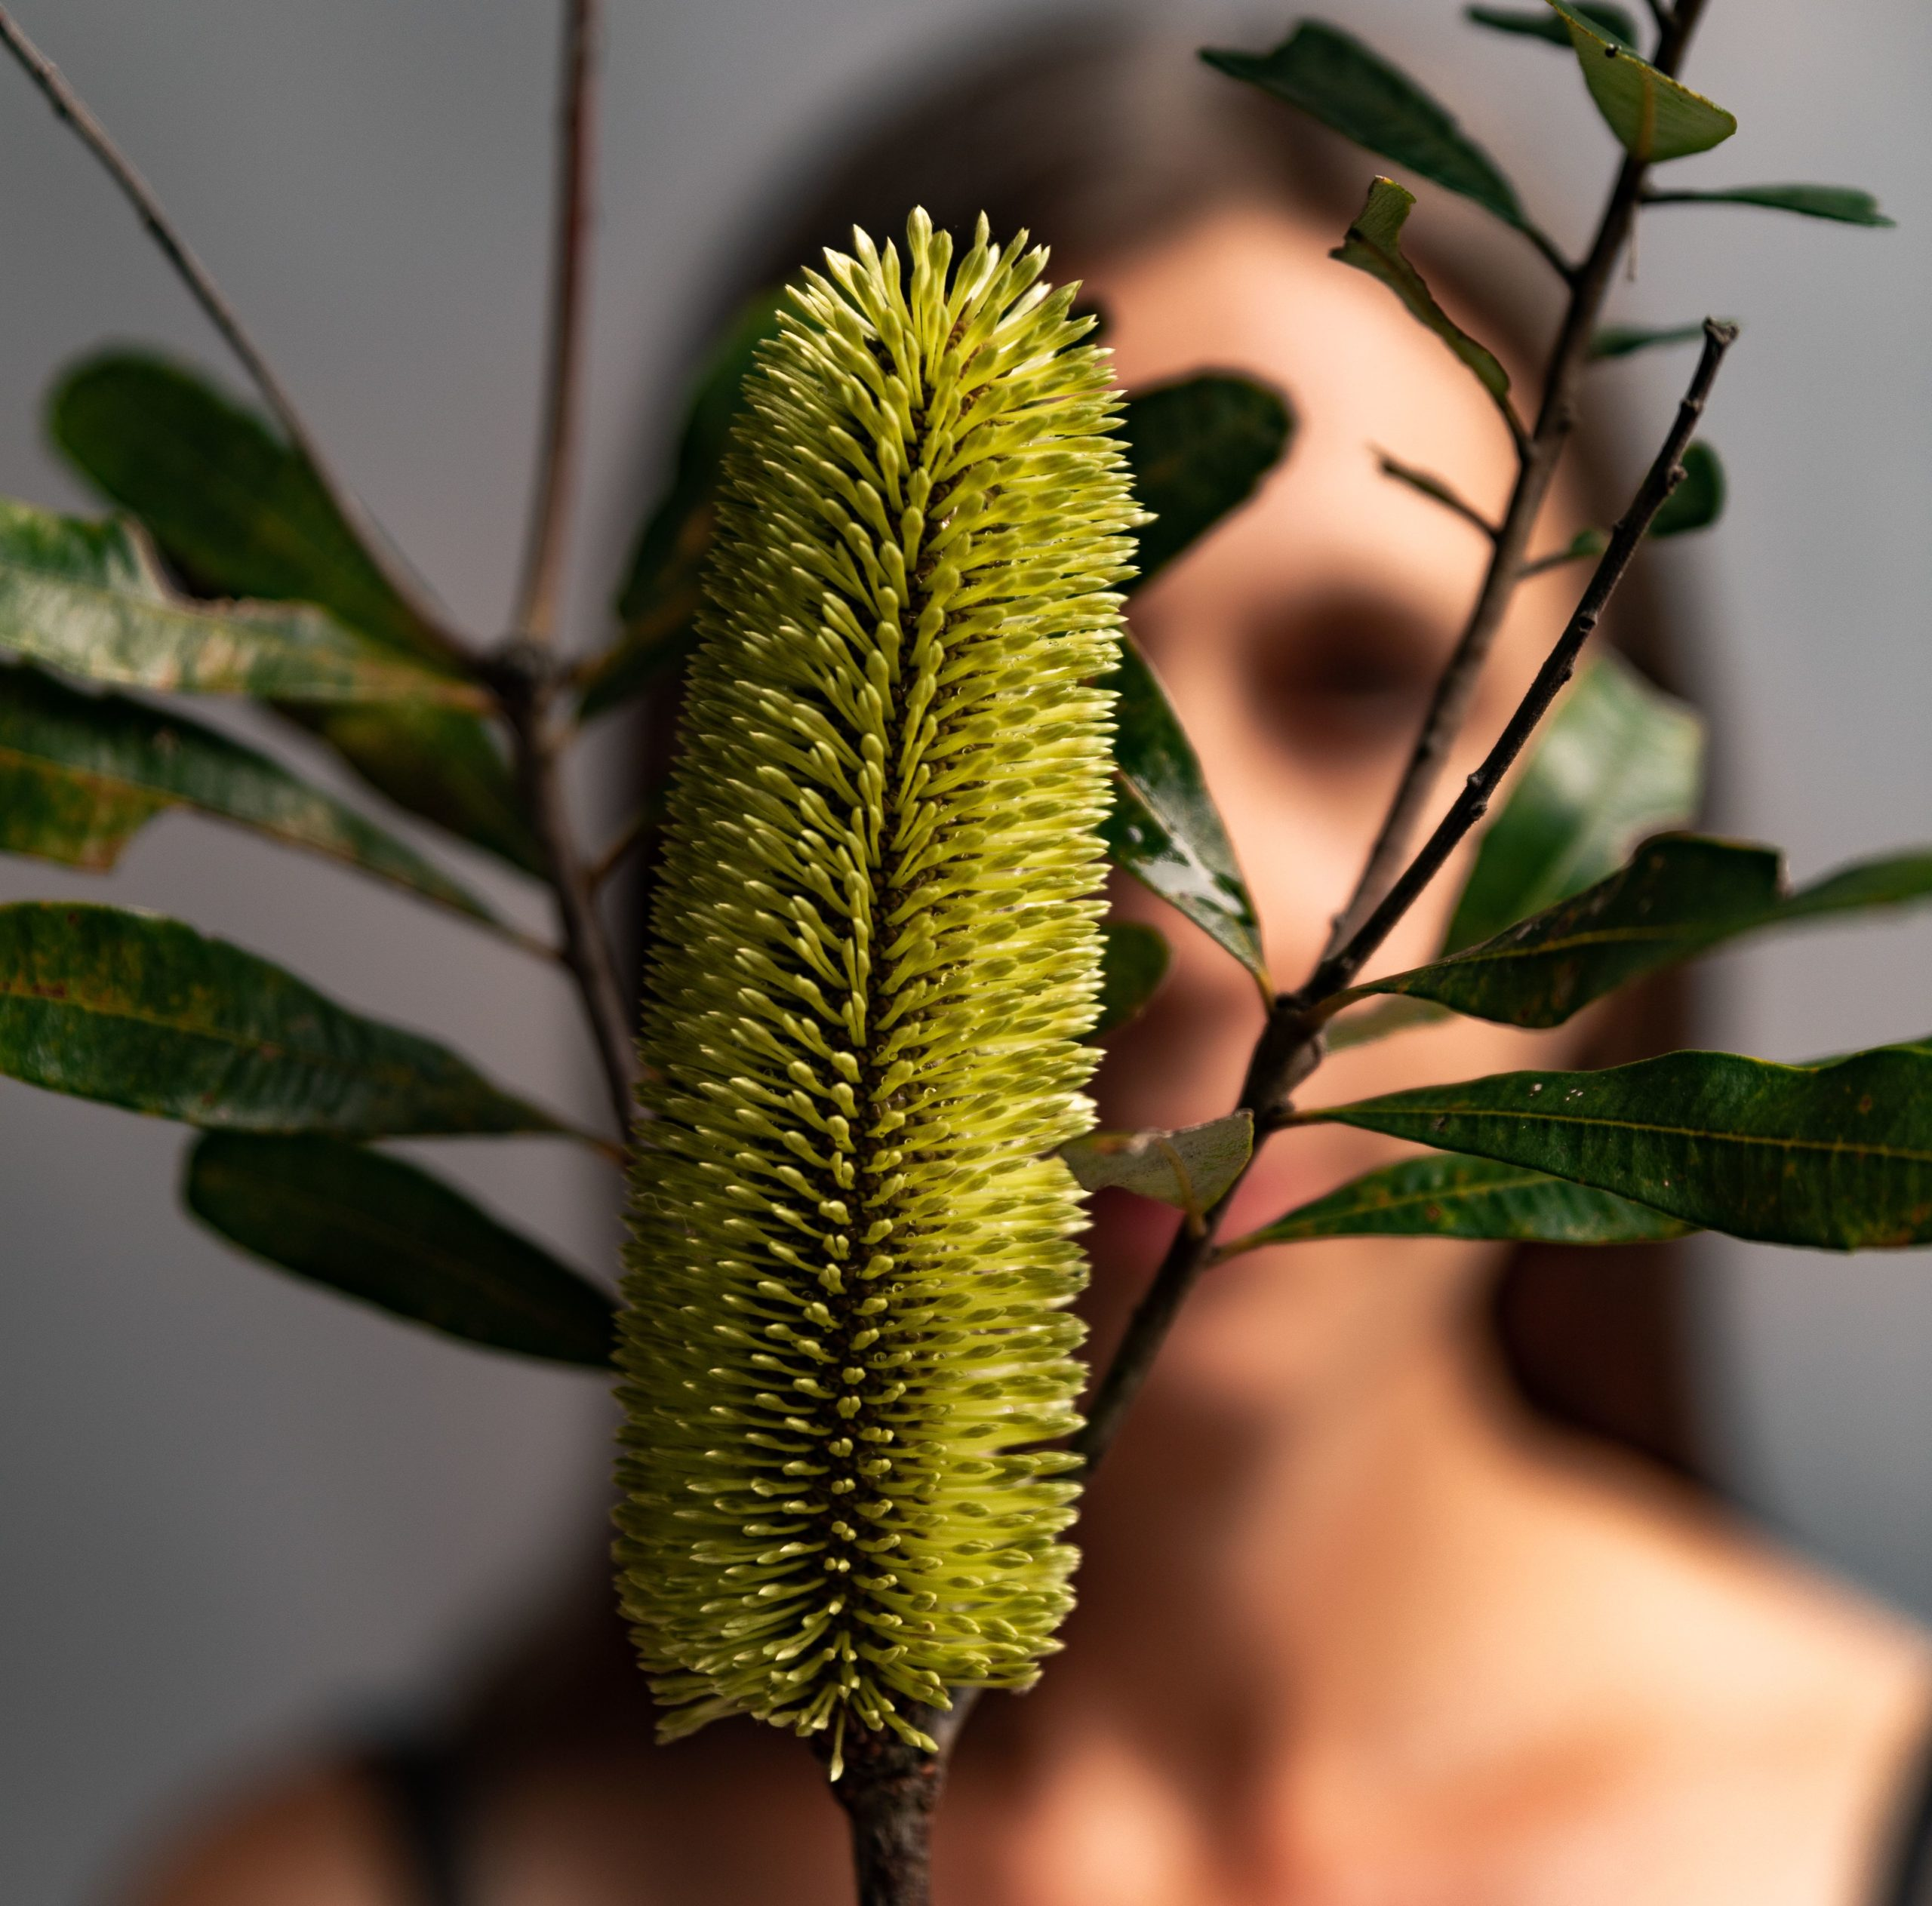 a person just out of focus behind a yellow textured flower